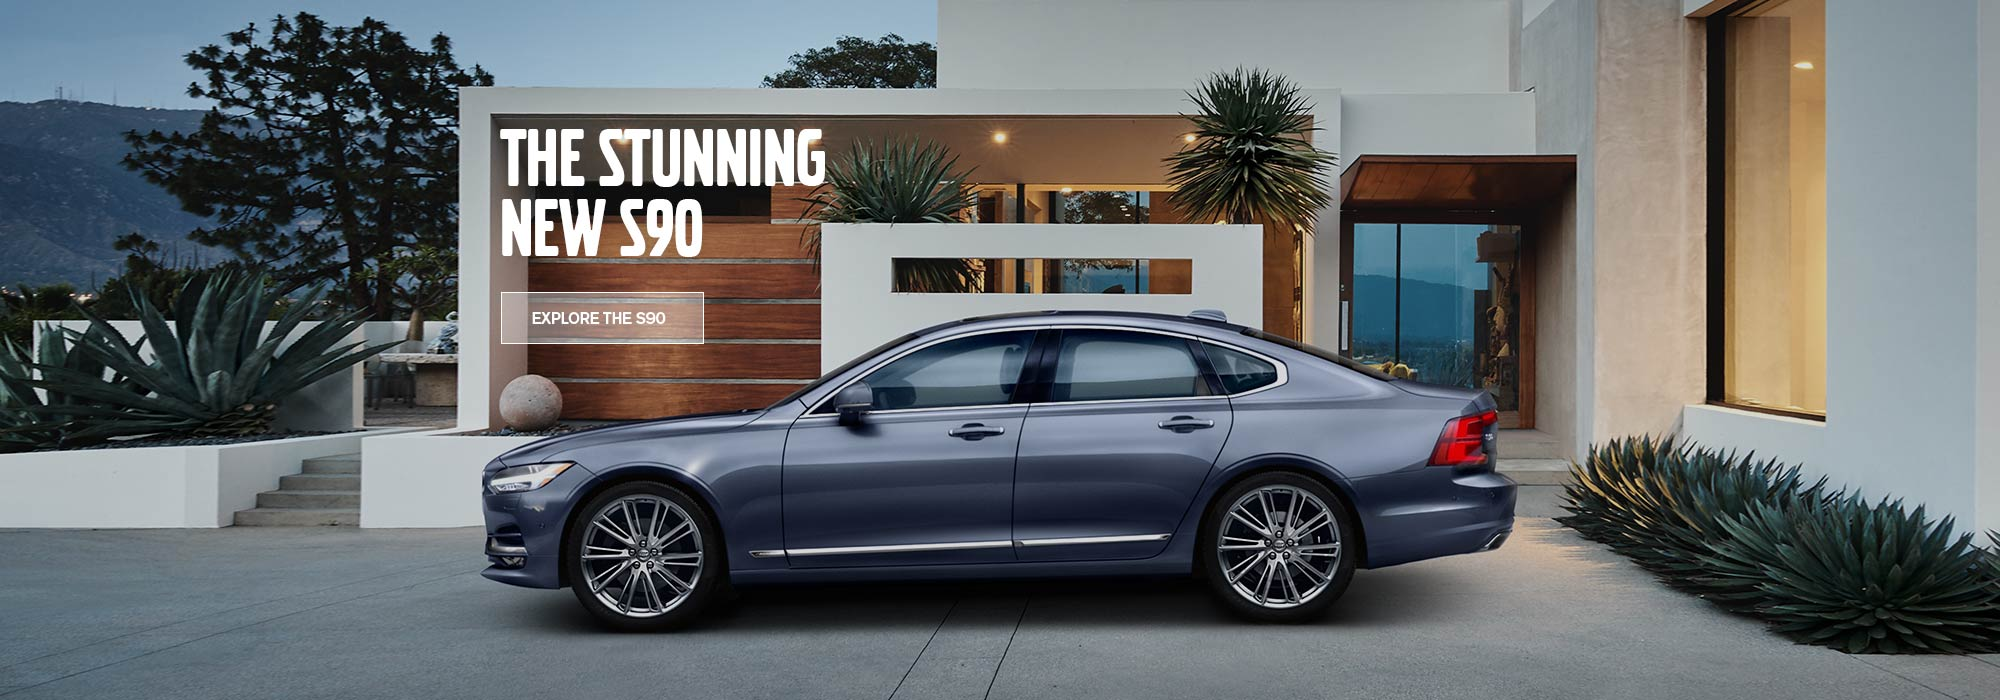 The stunning new S90